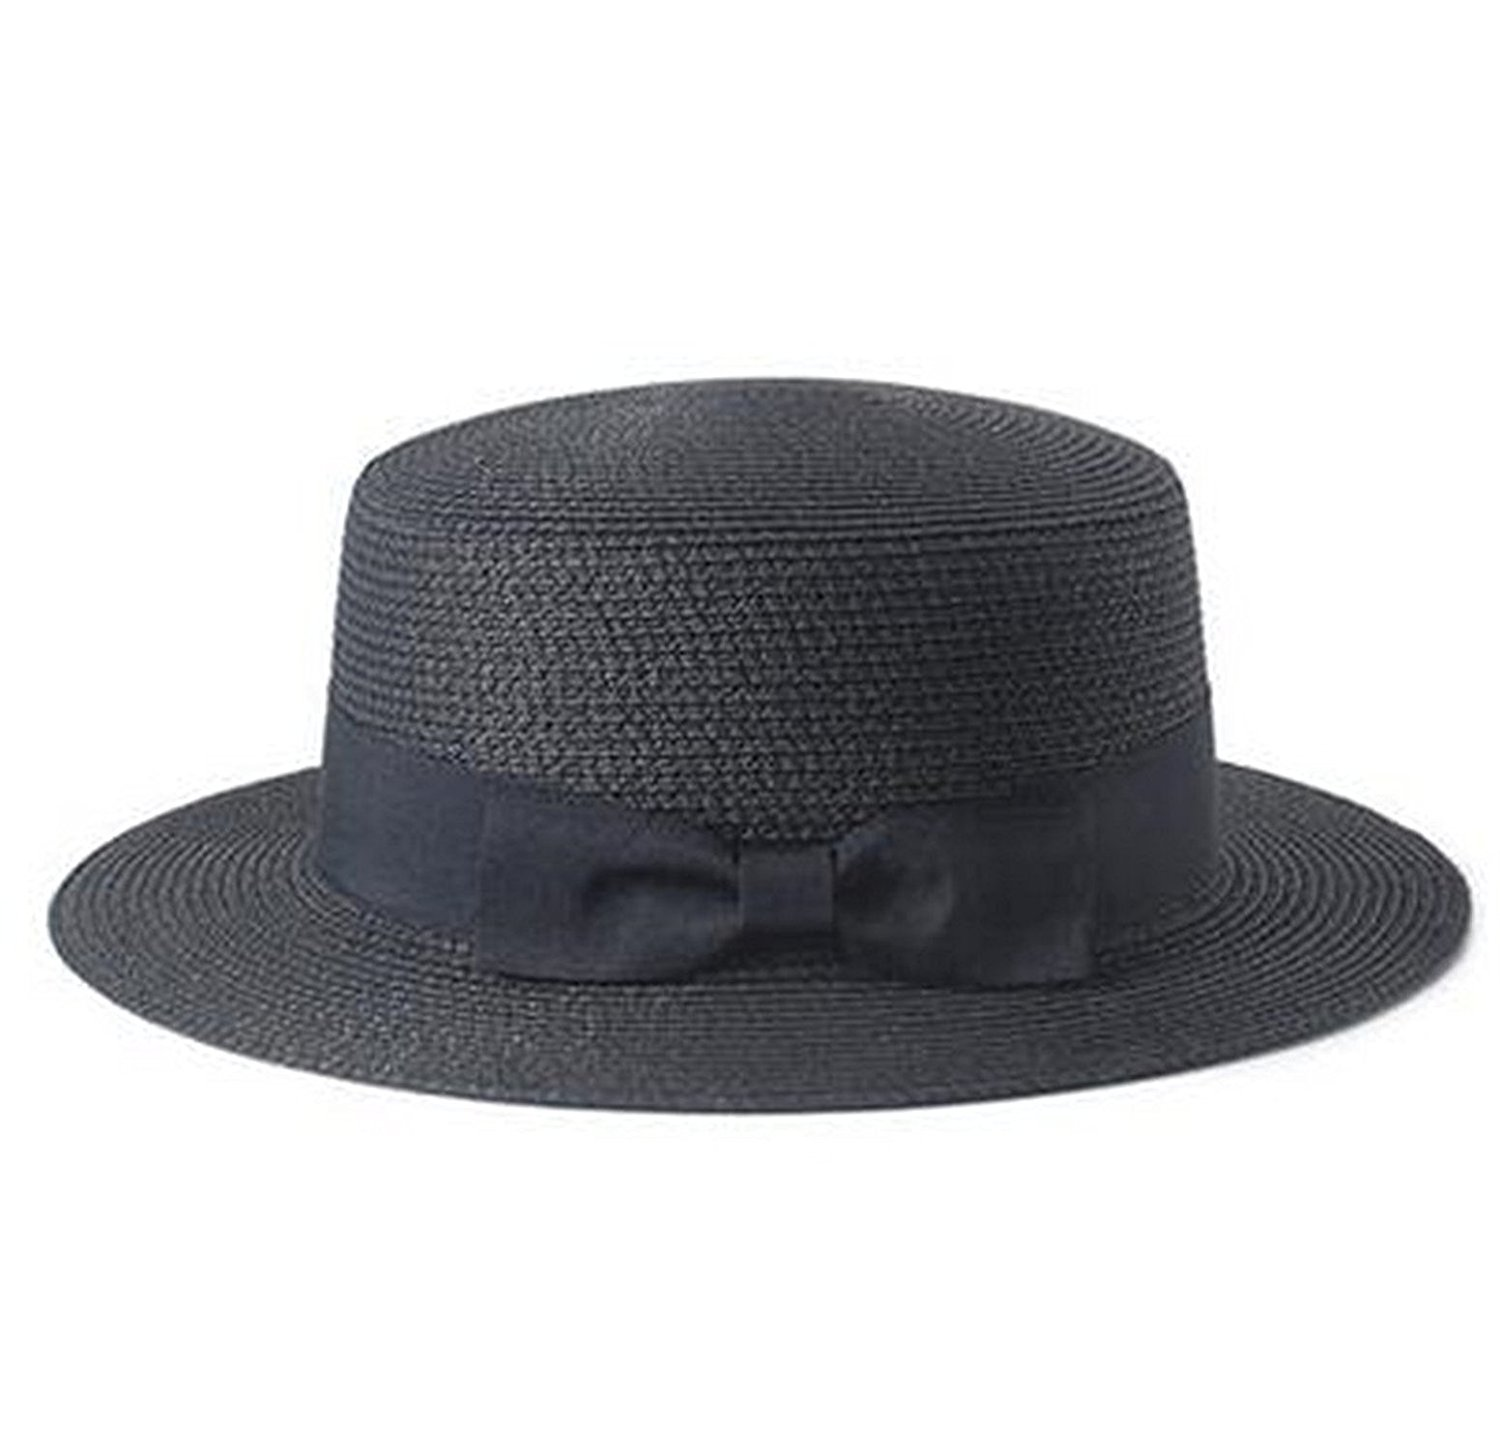 04525c3aec500 Get Quotations · Mainstream Sun Straw Hat boater hat Women s bow summer Hats  For Women Beach flat straw hat